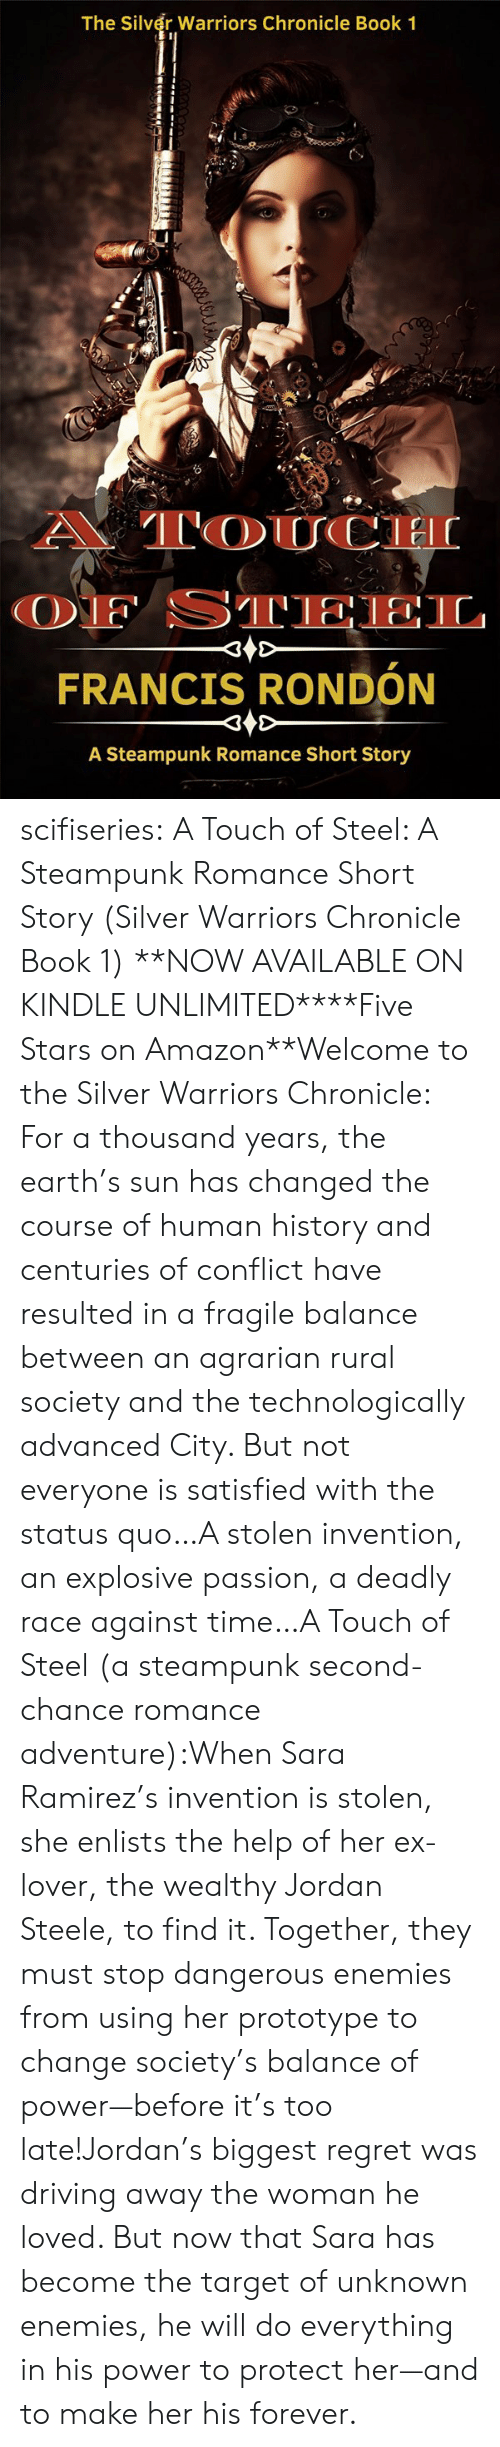 Advanced: The Silver Warriors Chronicle Book 1  A TOUCH  OF STEEL  FRANCIS RONDÓN  A Steampunk Romance Short Story scifiseries:   A Touch of Steel: A Steampunk Romance Short Story (Silver Warriors Chronicle Book 1)   **NOW AVAILABLE ON KINDLE UNLIMITED****Five Stars on Amazon**Welcome to the Silver Warriors Chronicle: For a thousand years, the earth's sun has changed the course of human history and centuries of conflict have resulted in a fragile balance between an agrarian rural society and the technologically advanced City. But not everyone is satisfied with the status quo…A stolen invention, an explosive passion, a deadly race against time…A Touch of Steel (a steampunk second-chance romance adventure):When Sara Ramirez's invention is stolen, she enlists the help of her ex-lover, the wealthy Jordan Steele, to find it. Together, they must stop dangerous enemies from using her prototype to change society's balance of power—before it's too late!Jordan's biggest regret was driving away the woman he loved. But now that Sara has become the target of unknown enemies, he will do everything in his power to protect her—and to make her his forever.